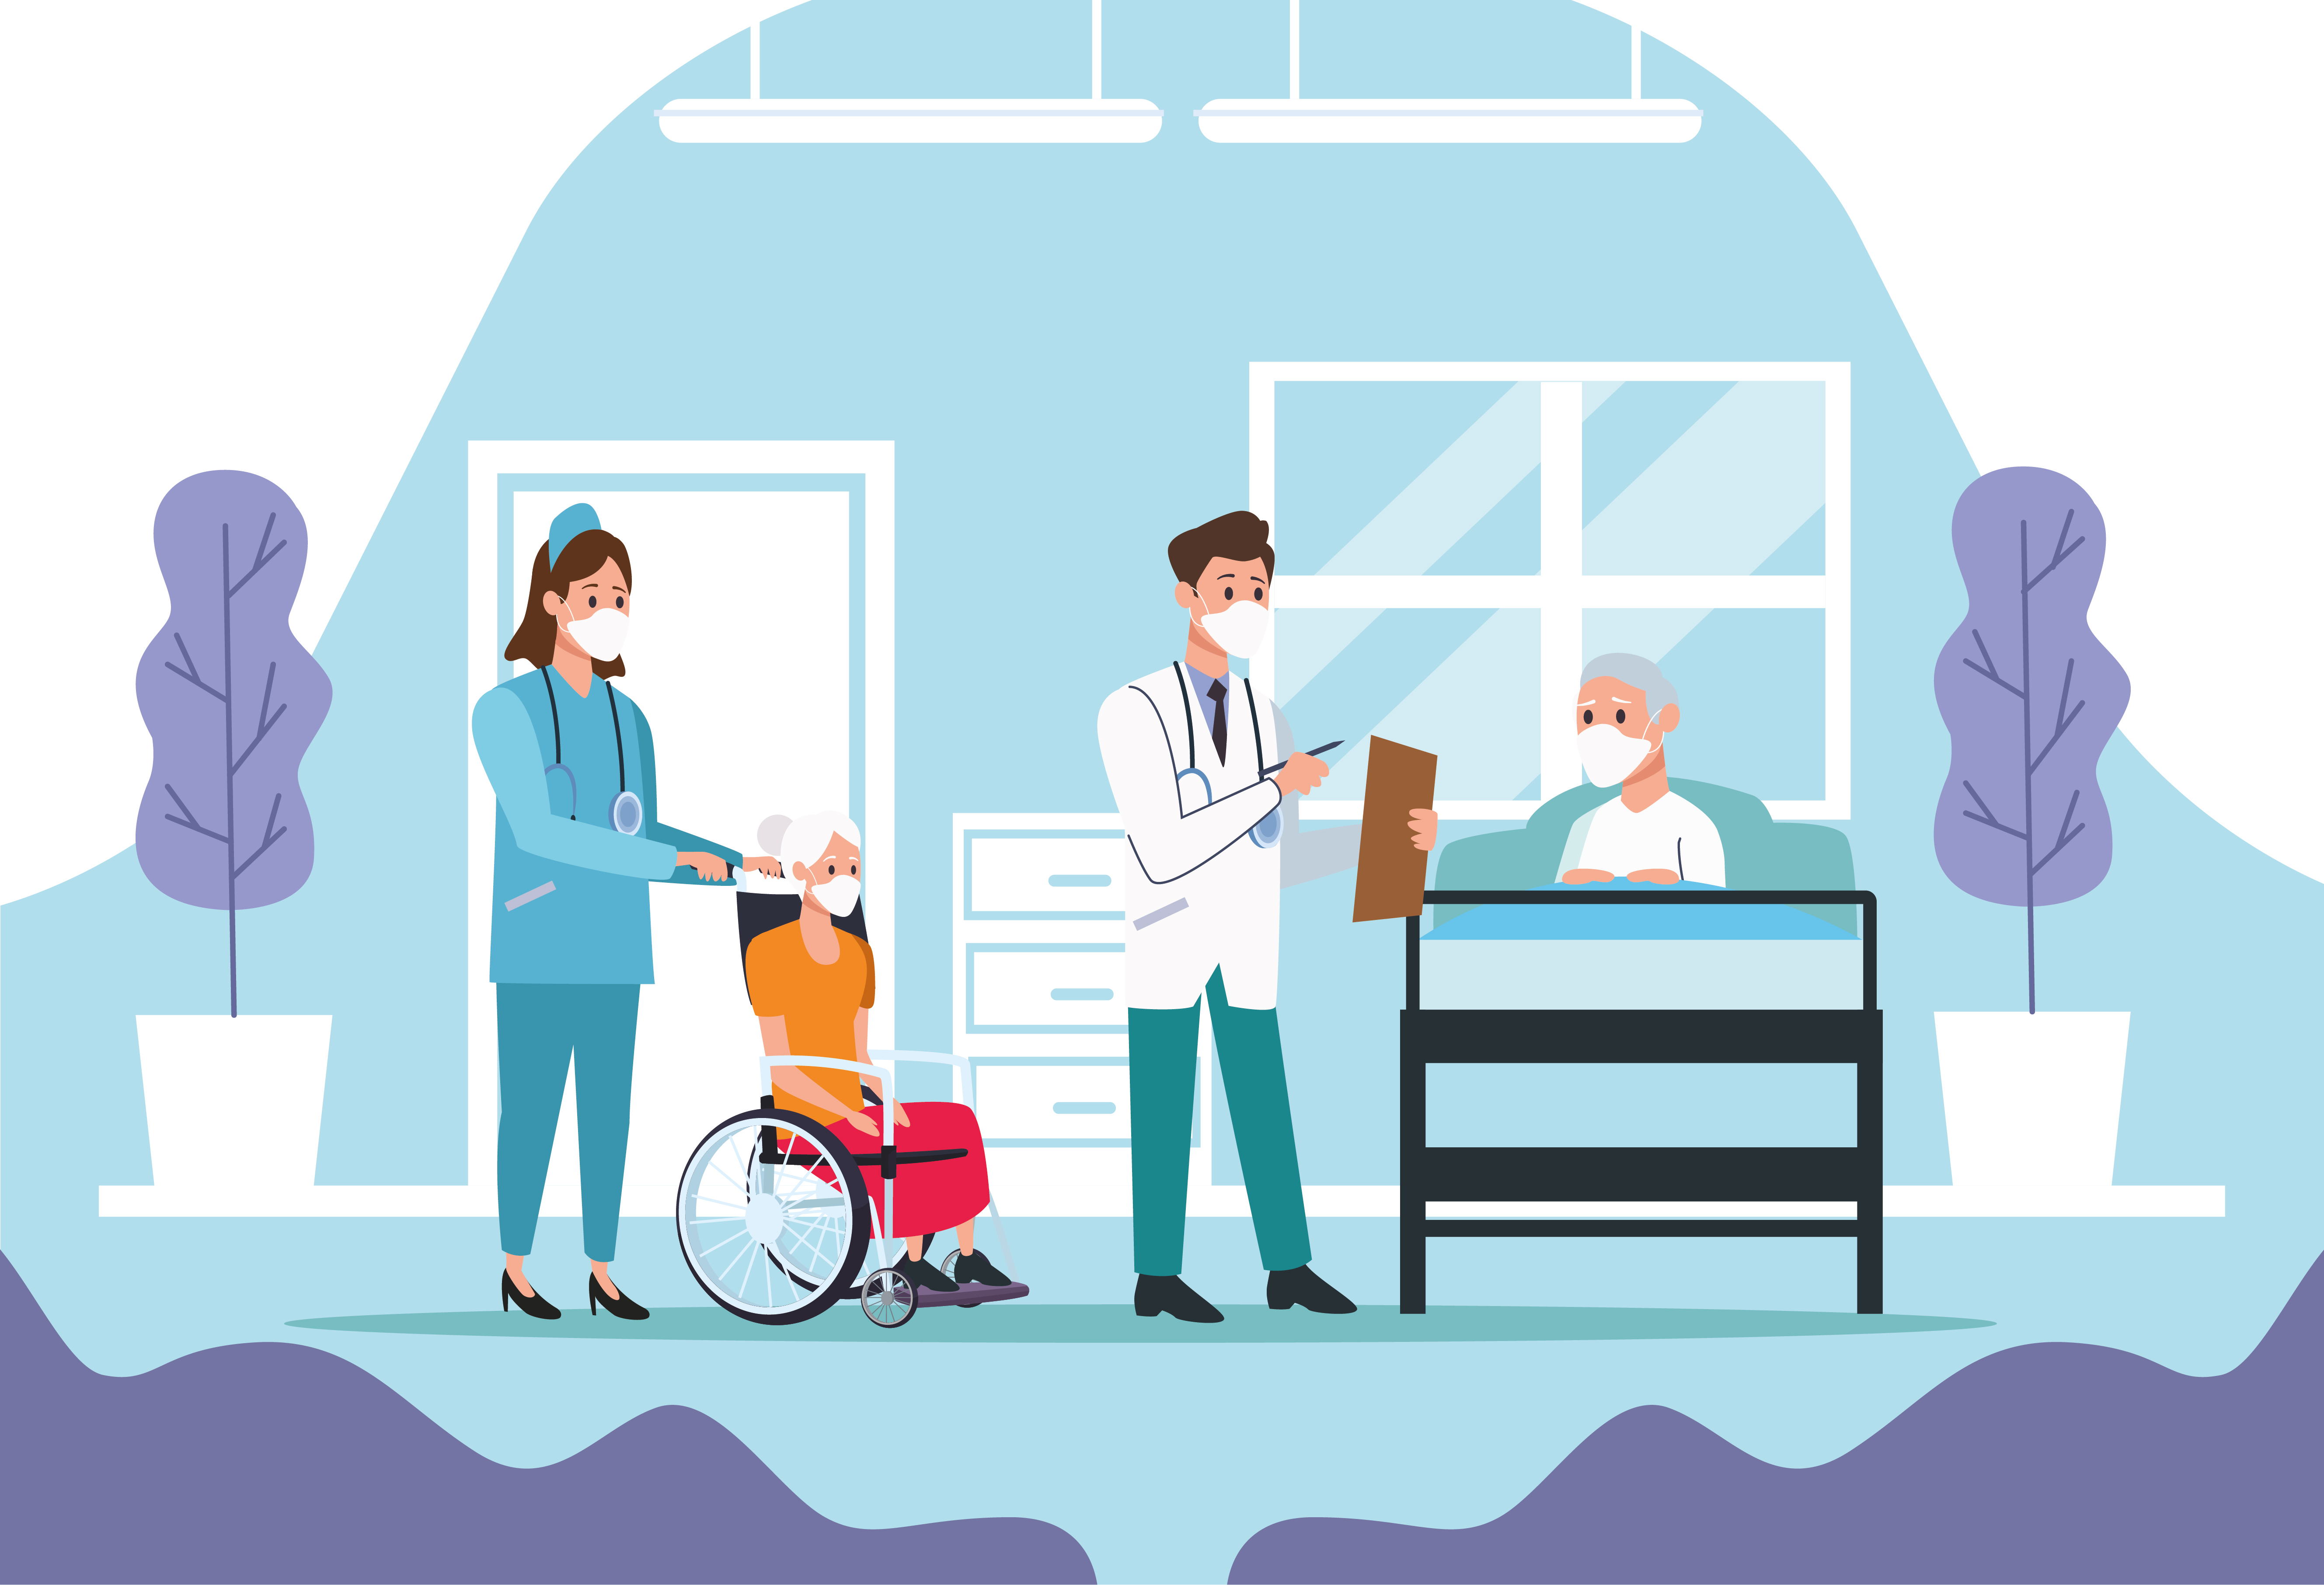 Medical staff taking care of elderly couple characters vector